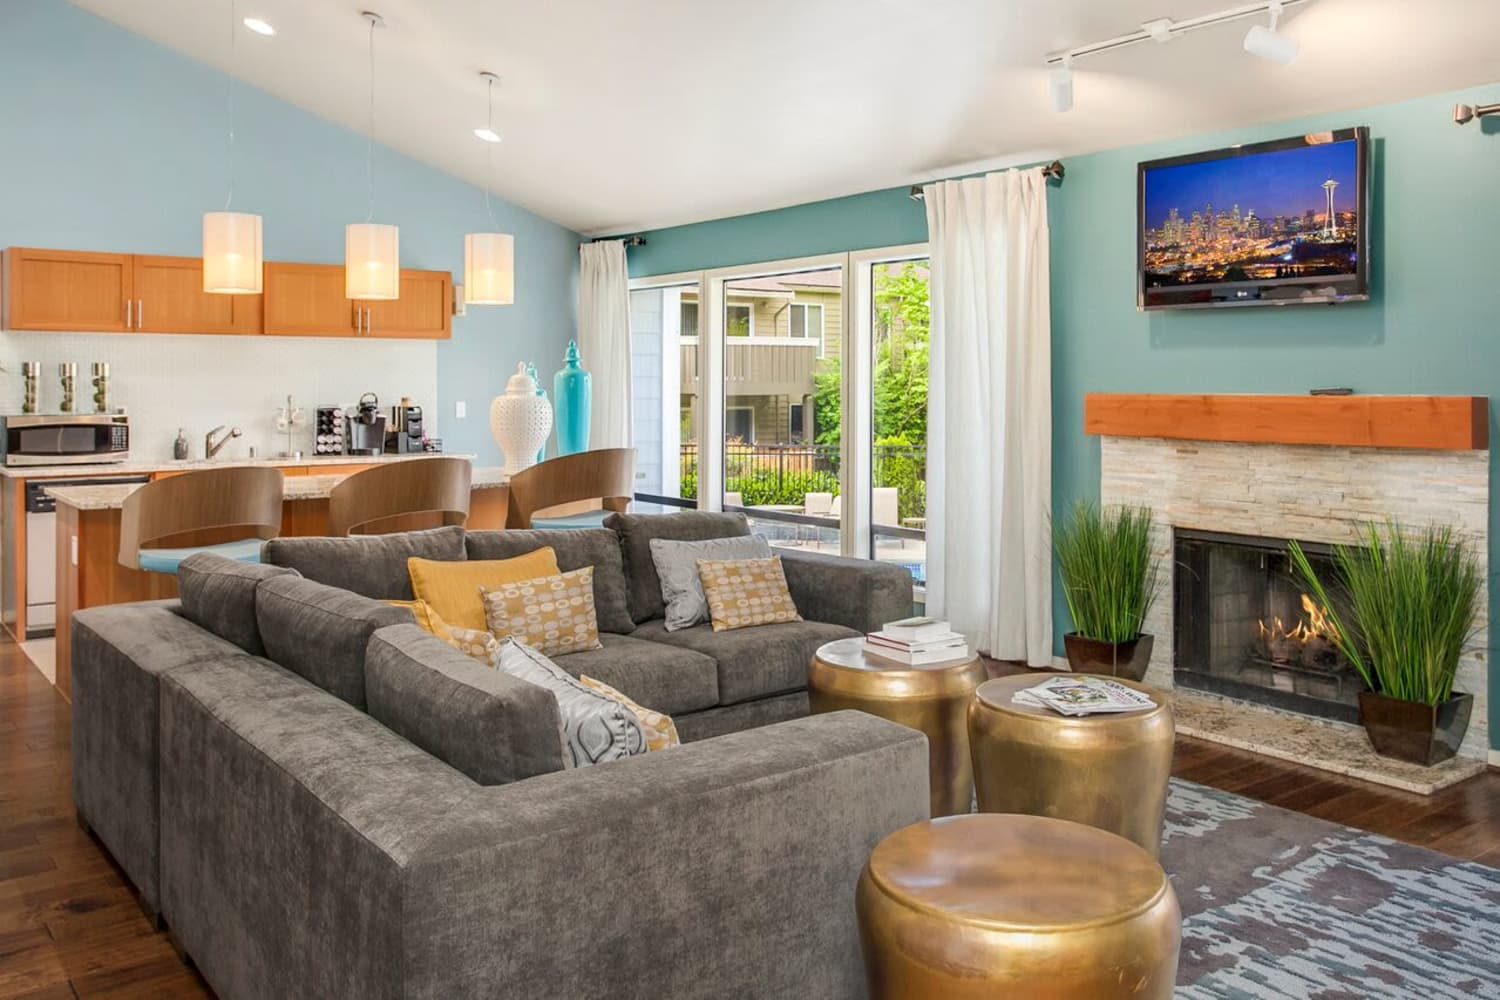 Bright living room with high ceilings at The VUE in Kirkland, Washington